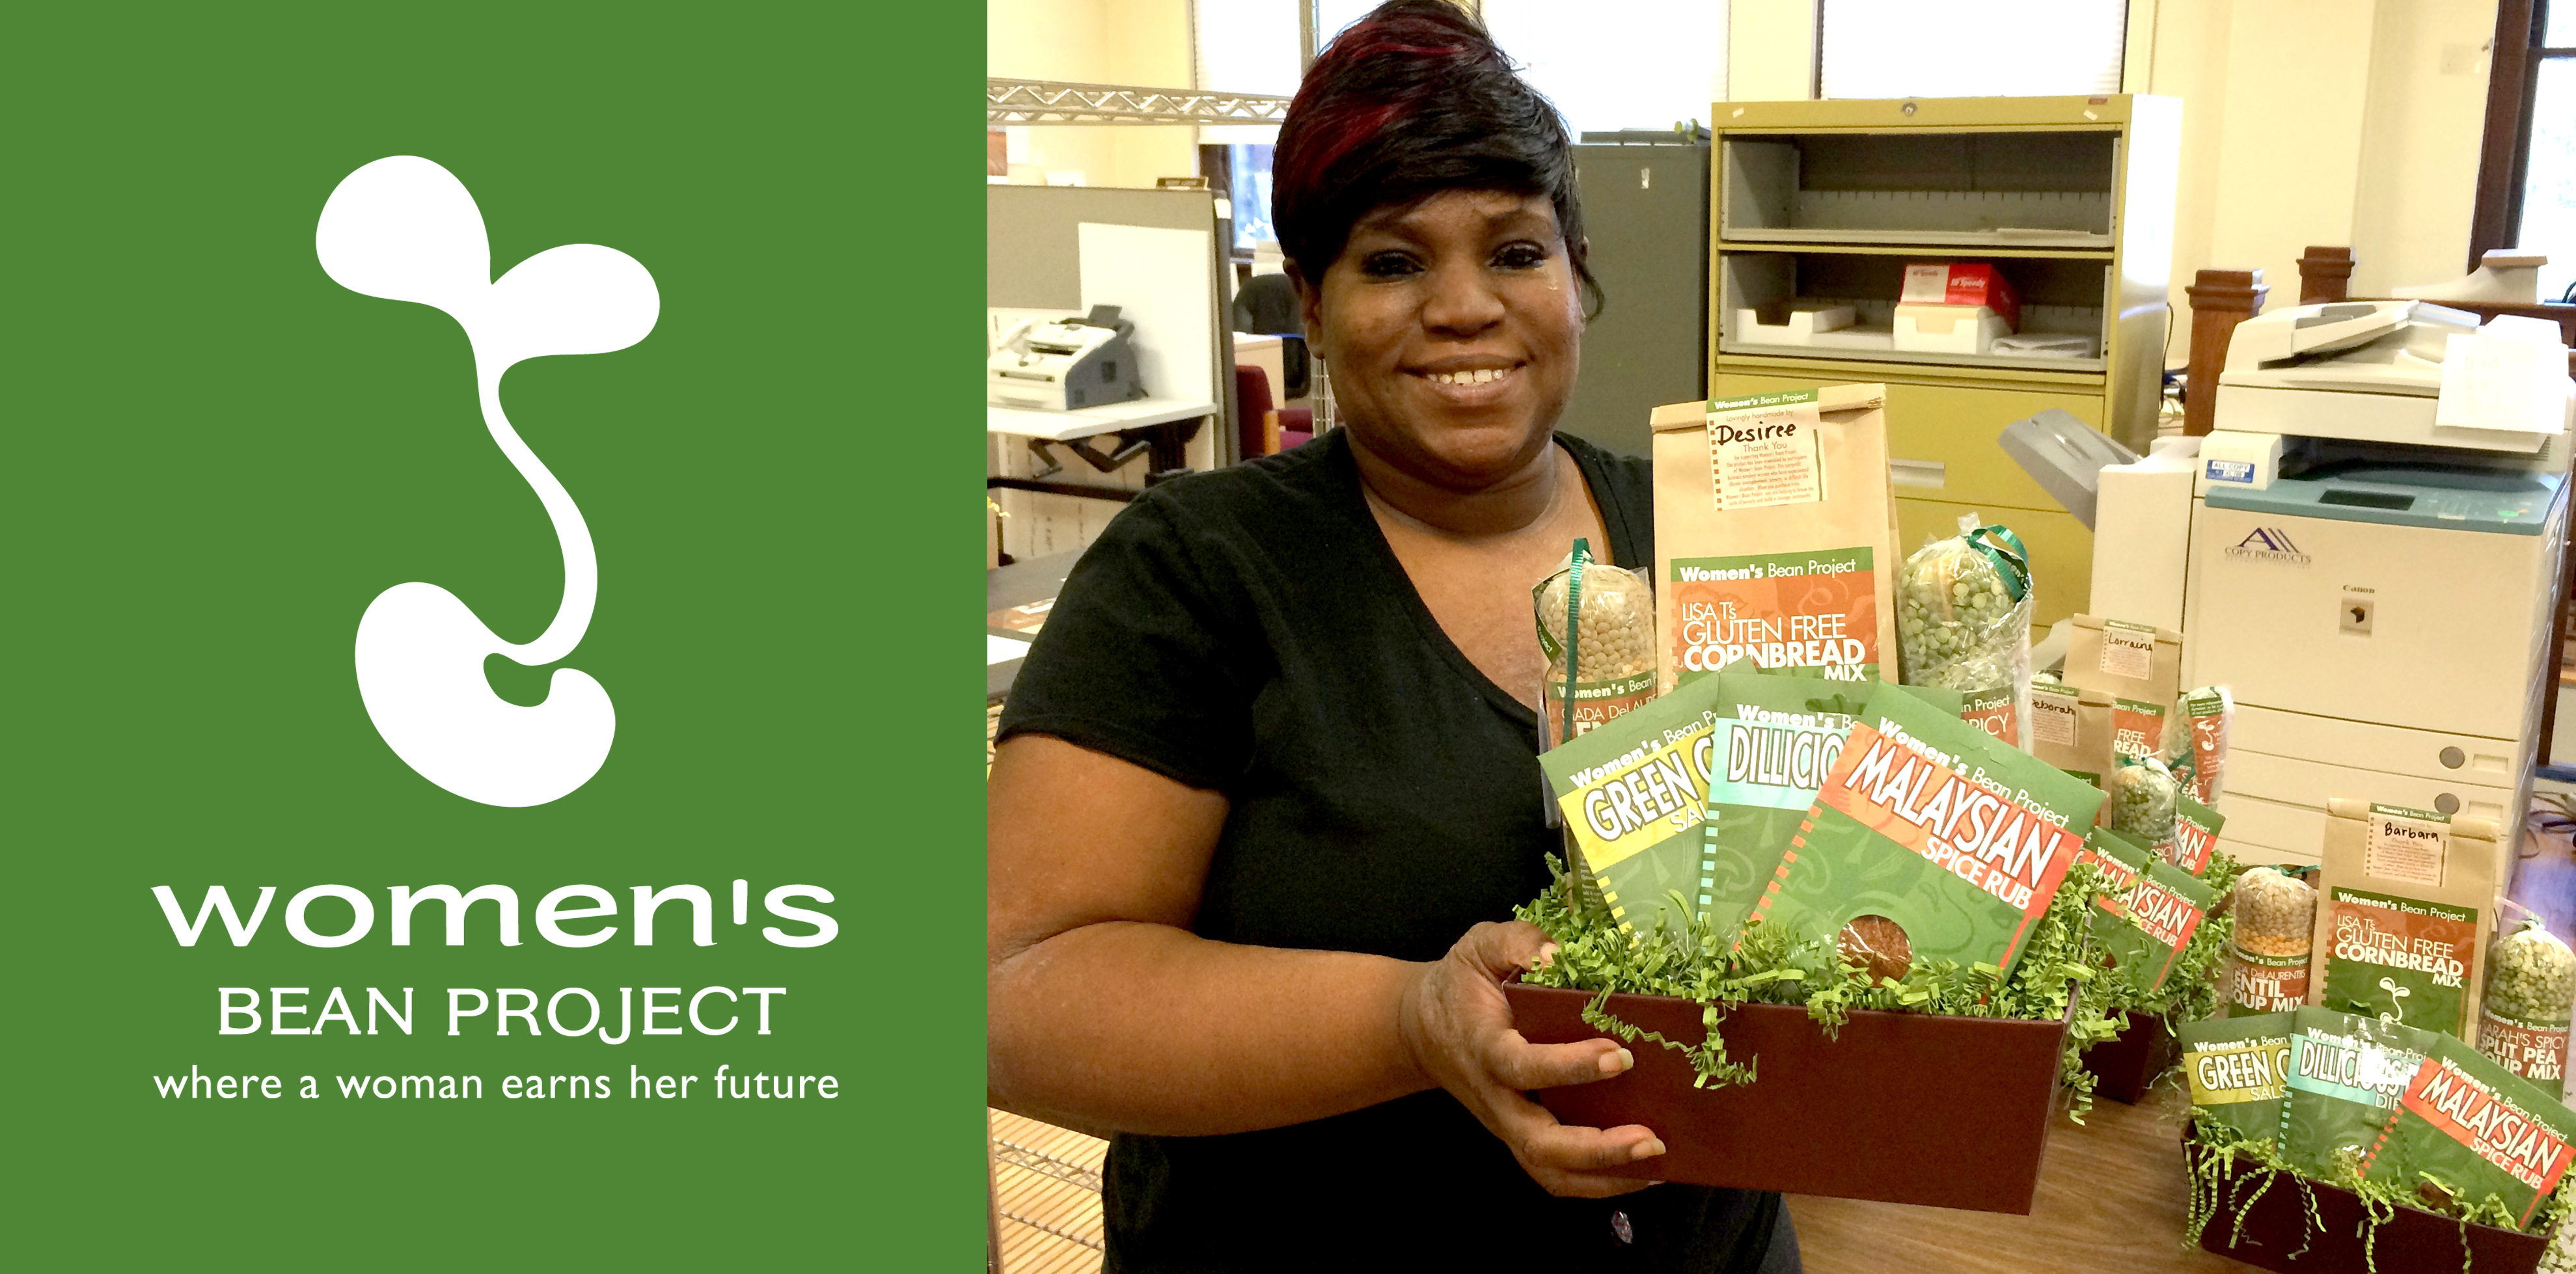 desiree displaying gift basket by womens bean project